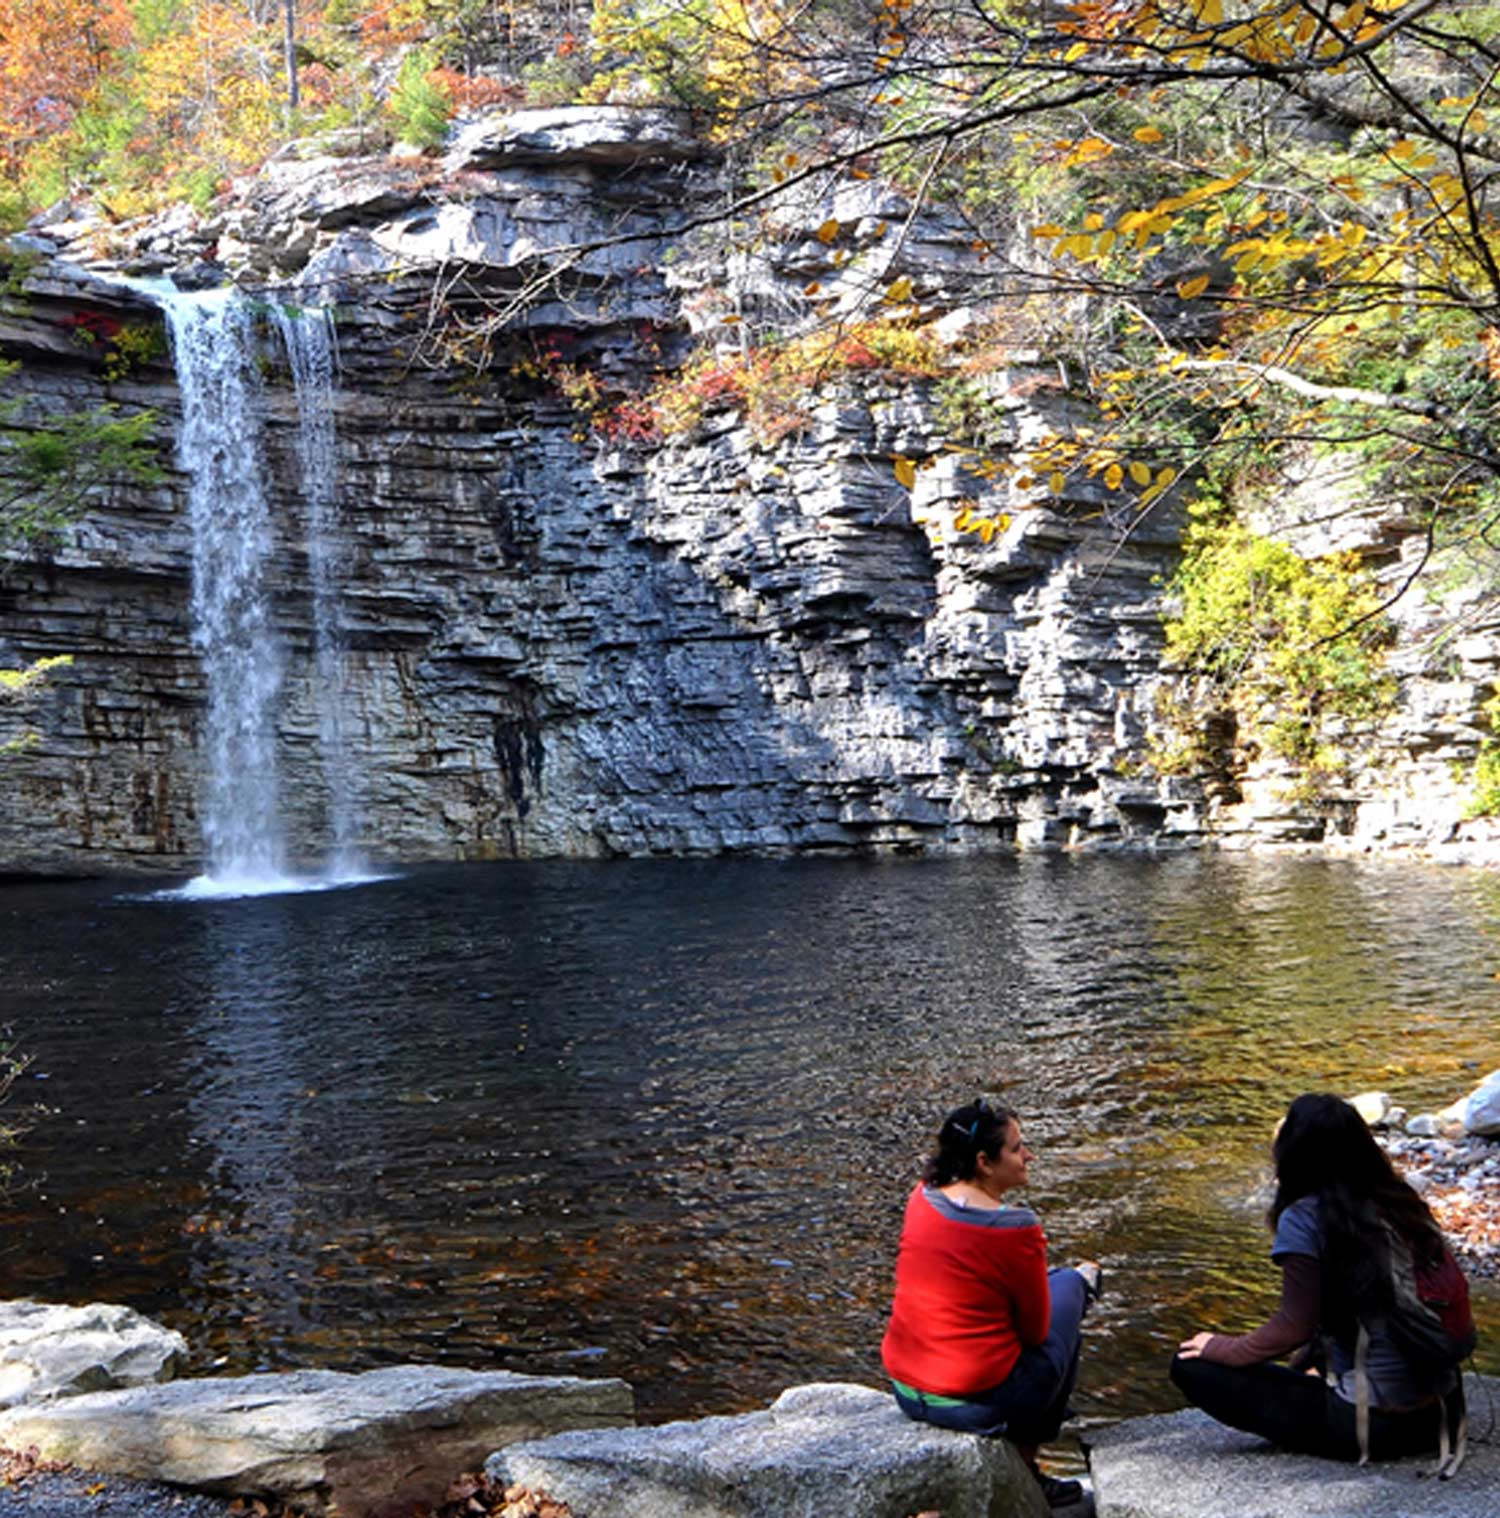 two people sitting at a waterfalls edge in gardiner